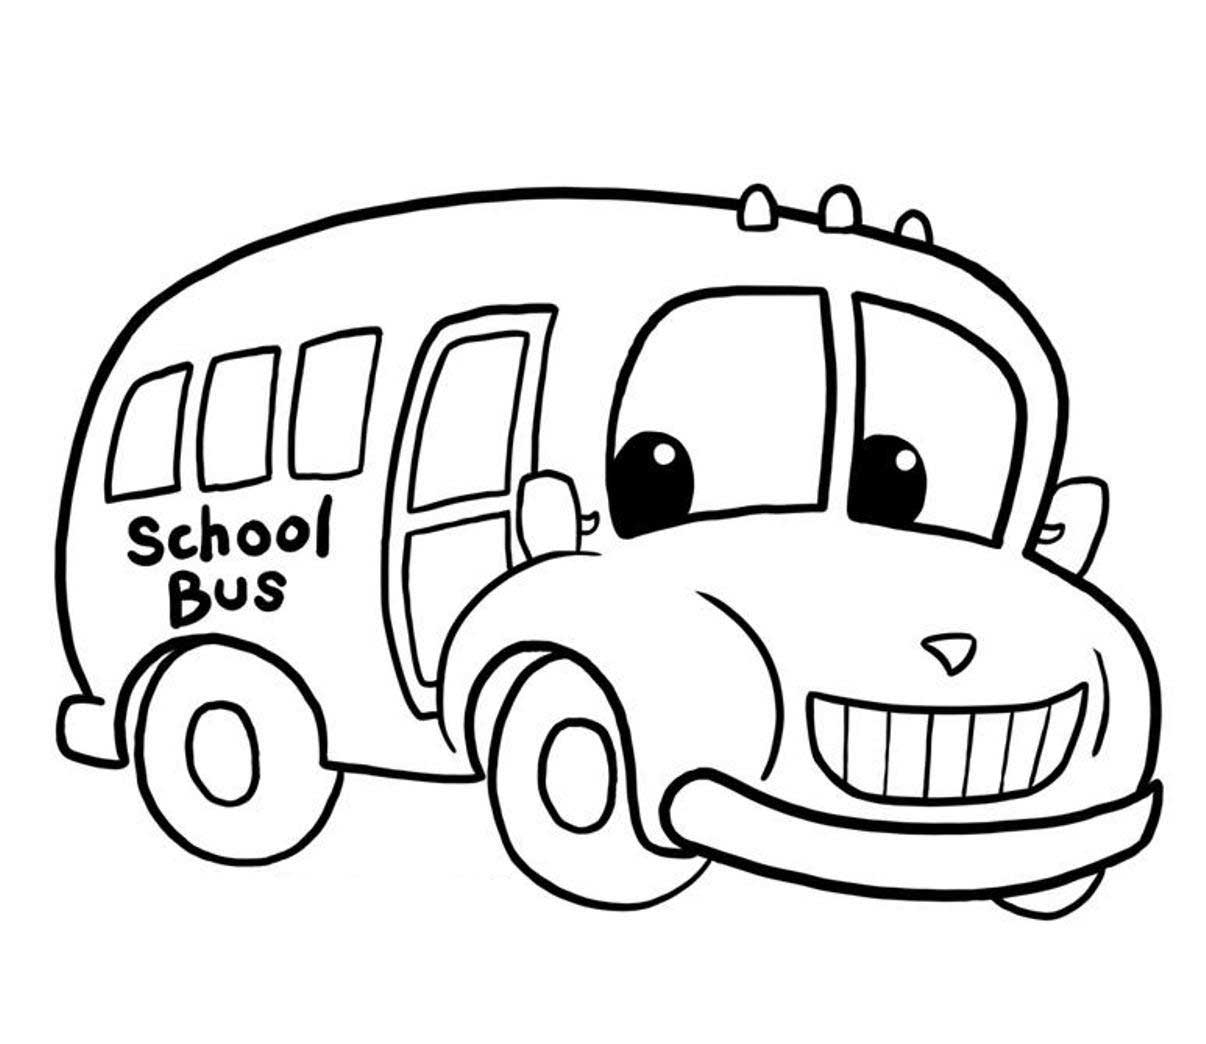 Cartoon School Bus Coloring Page